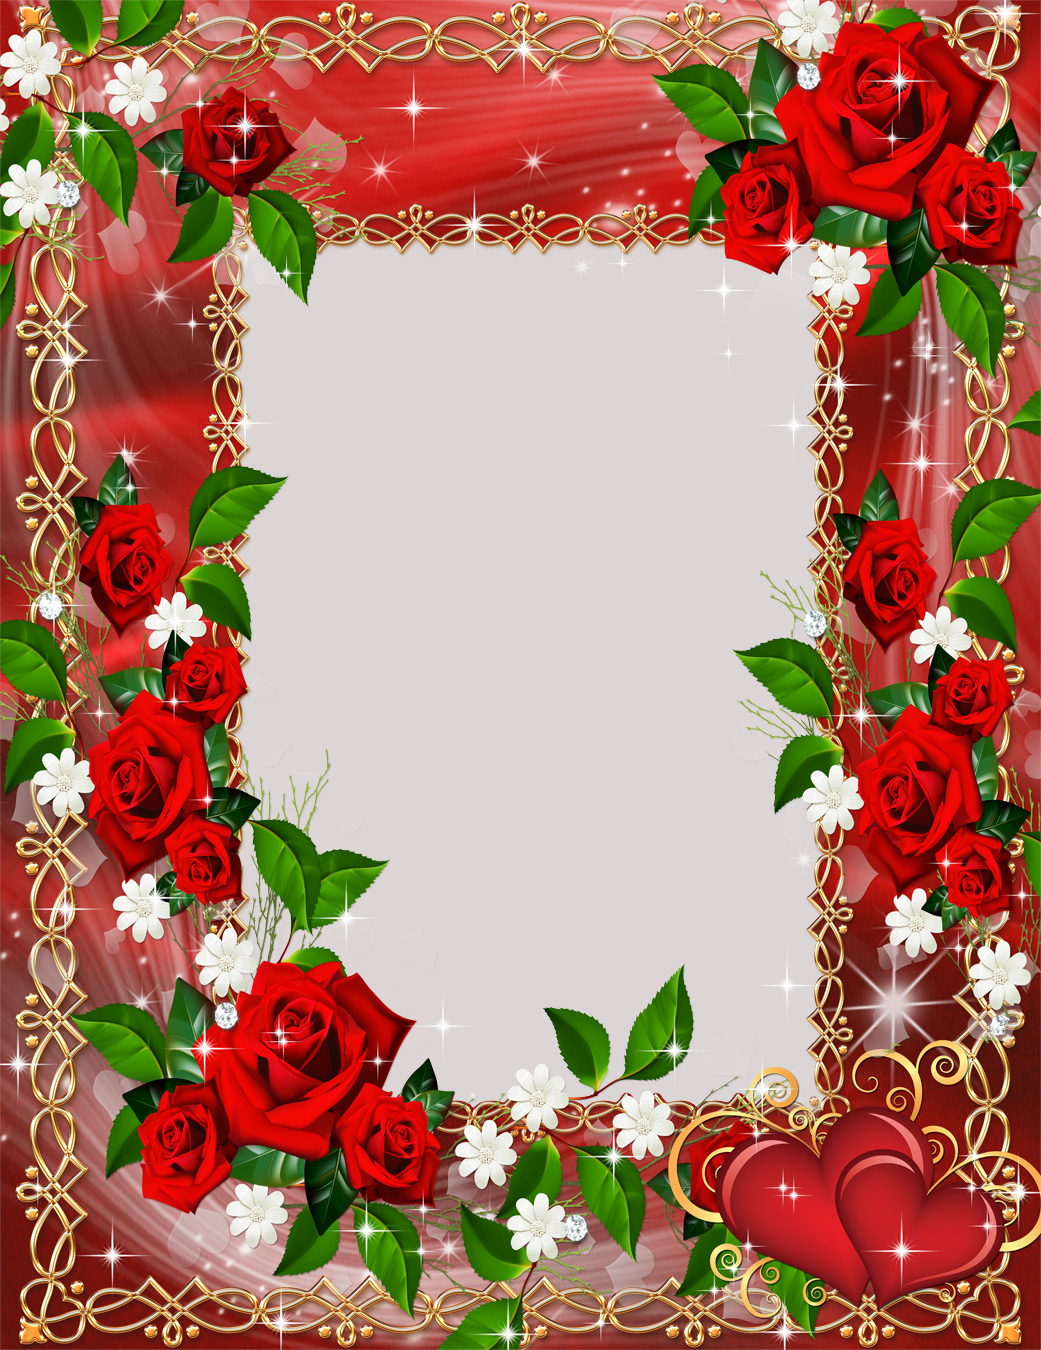 Check out our romantic photo frames – LoonaPix!